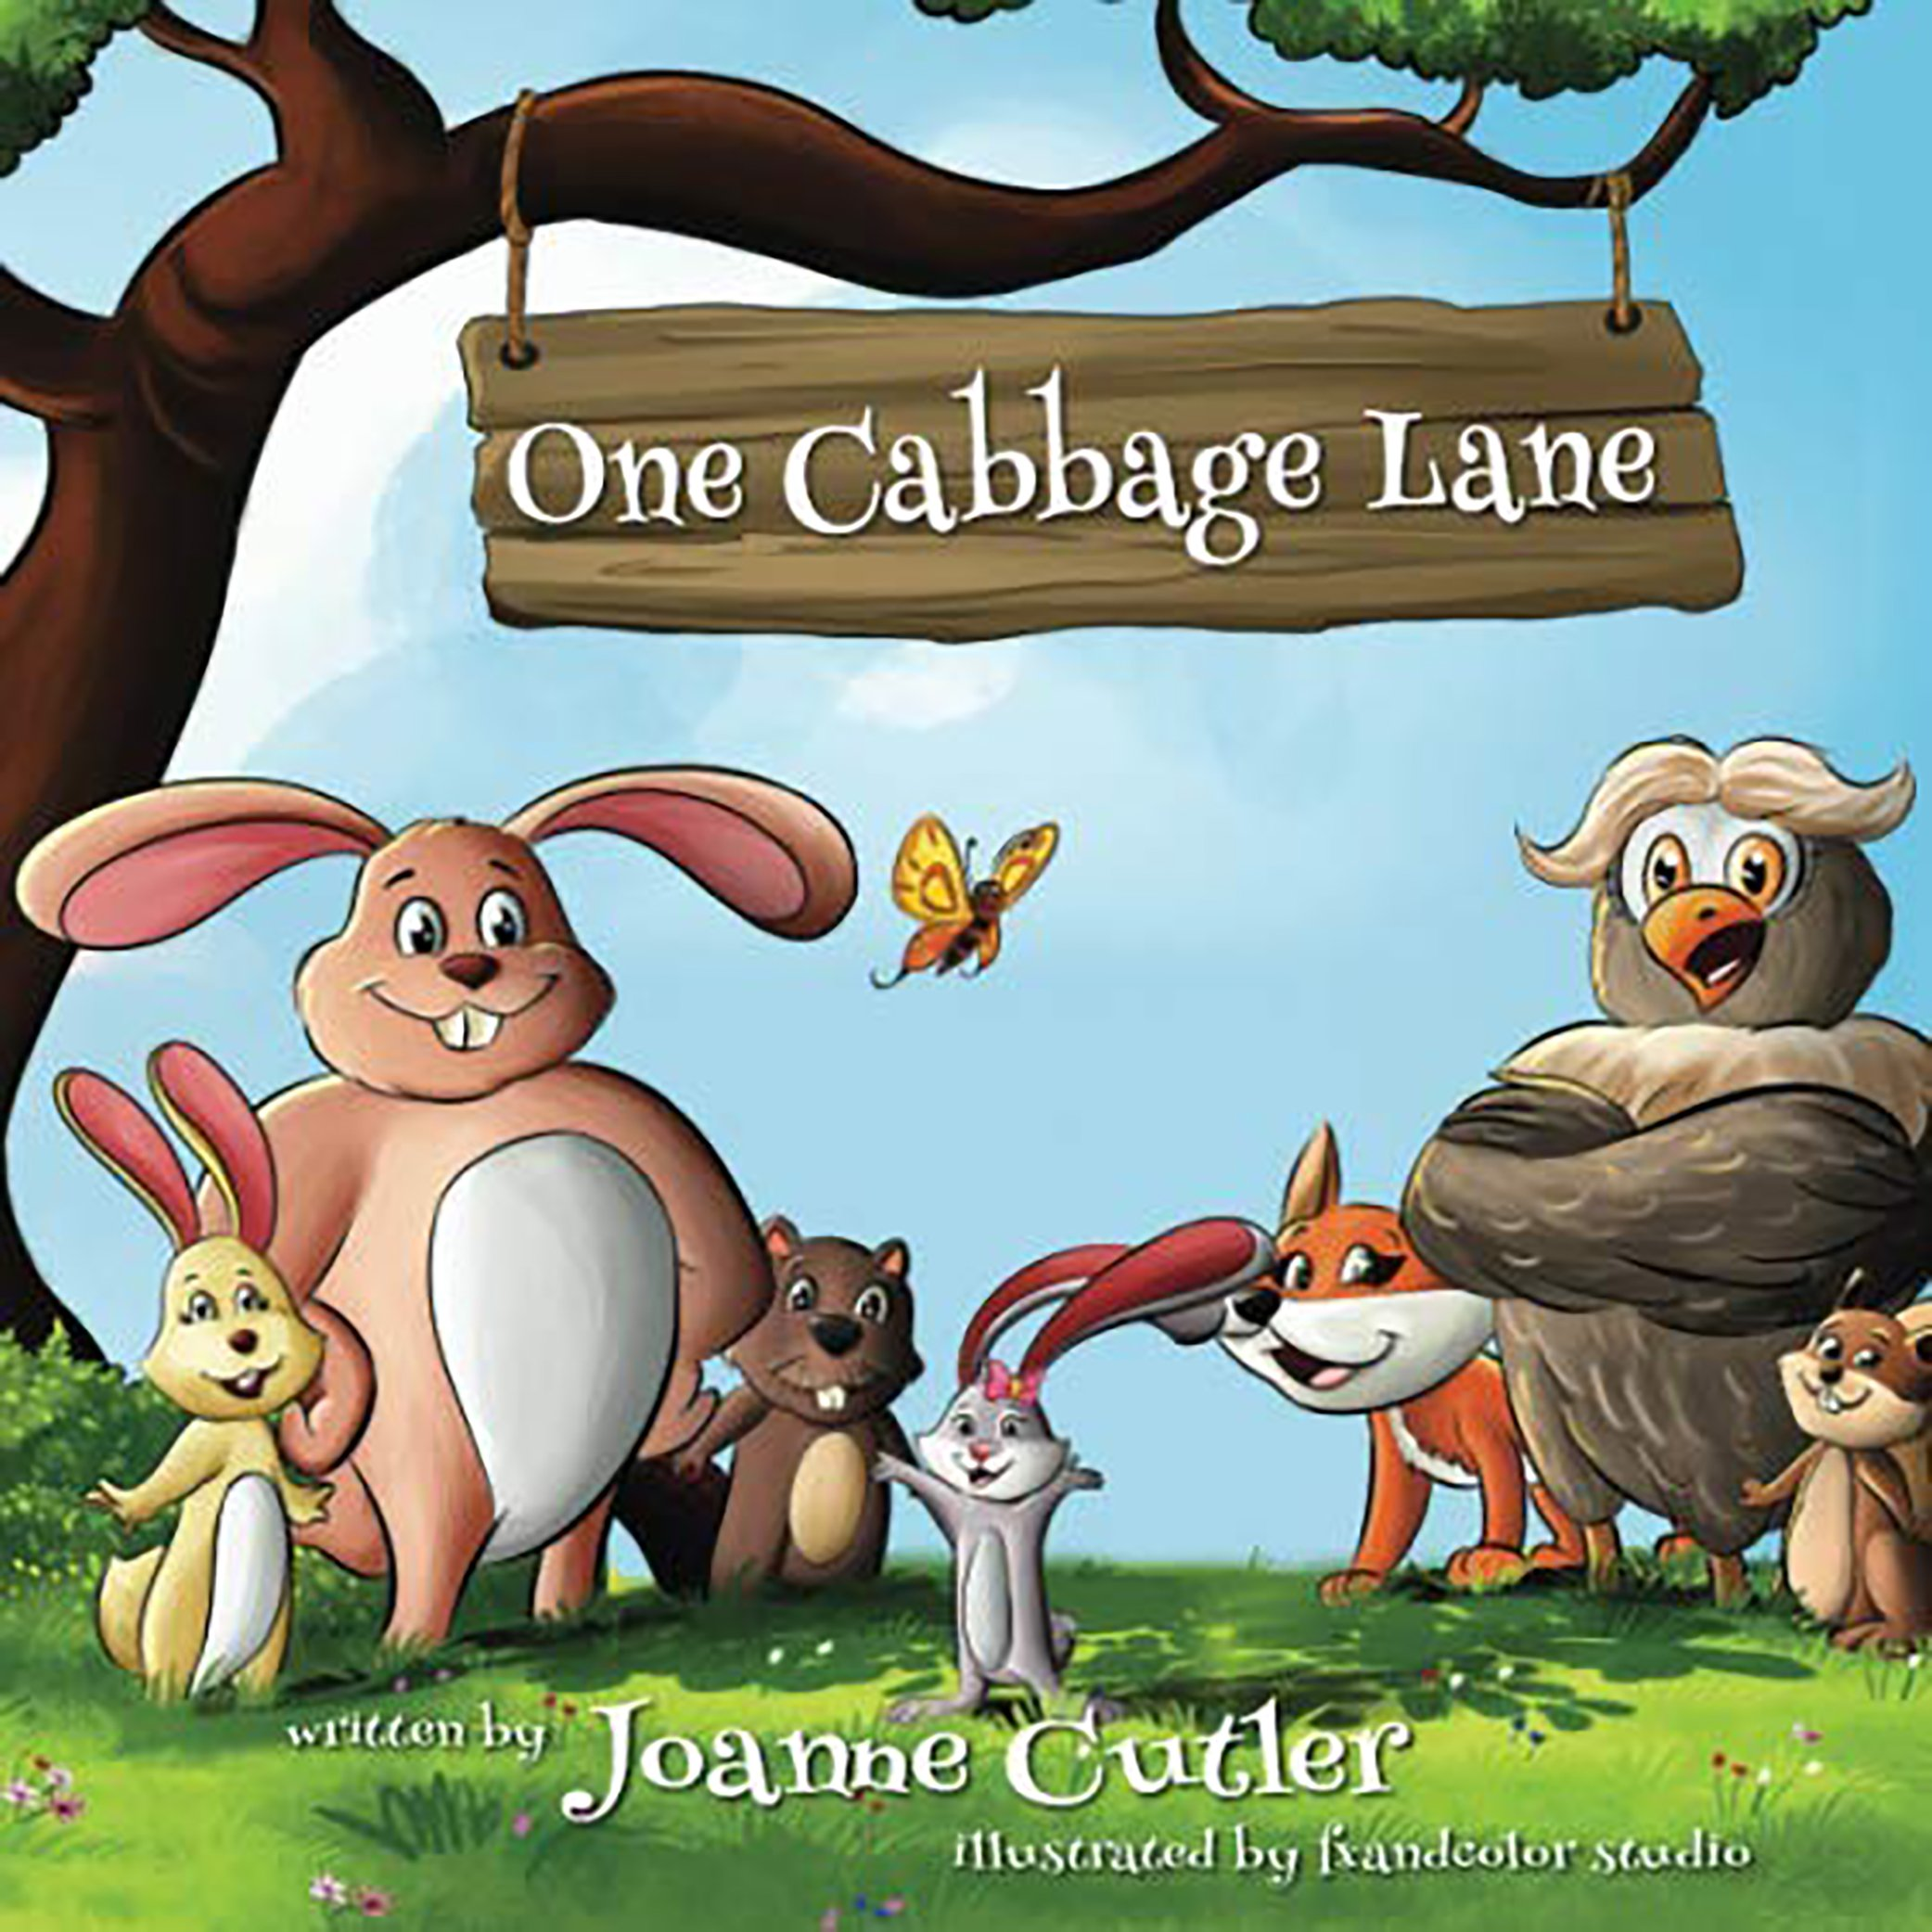 Joanne Cutler - One Cabbage Lane